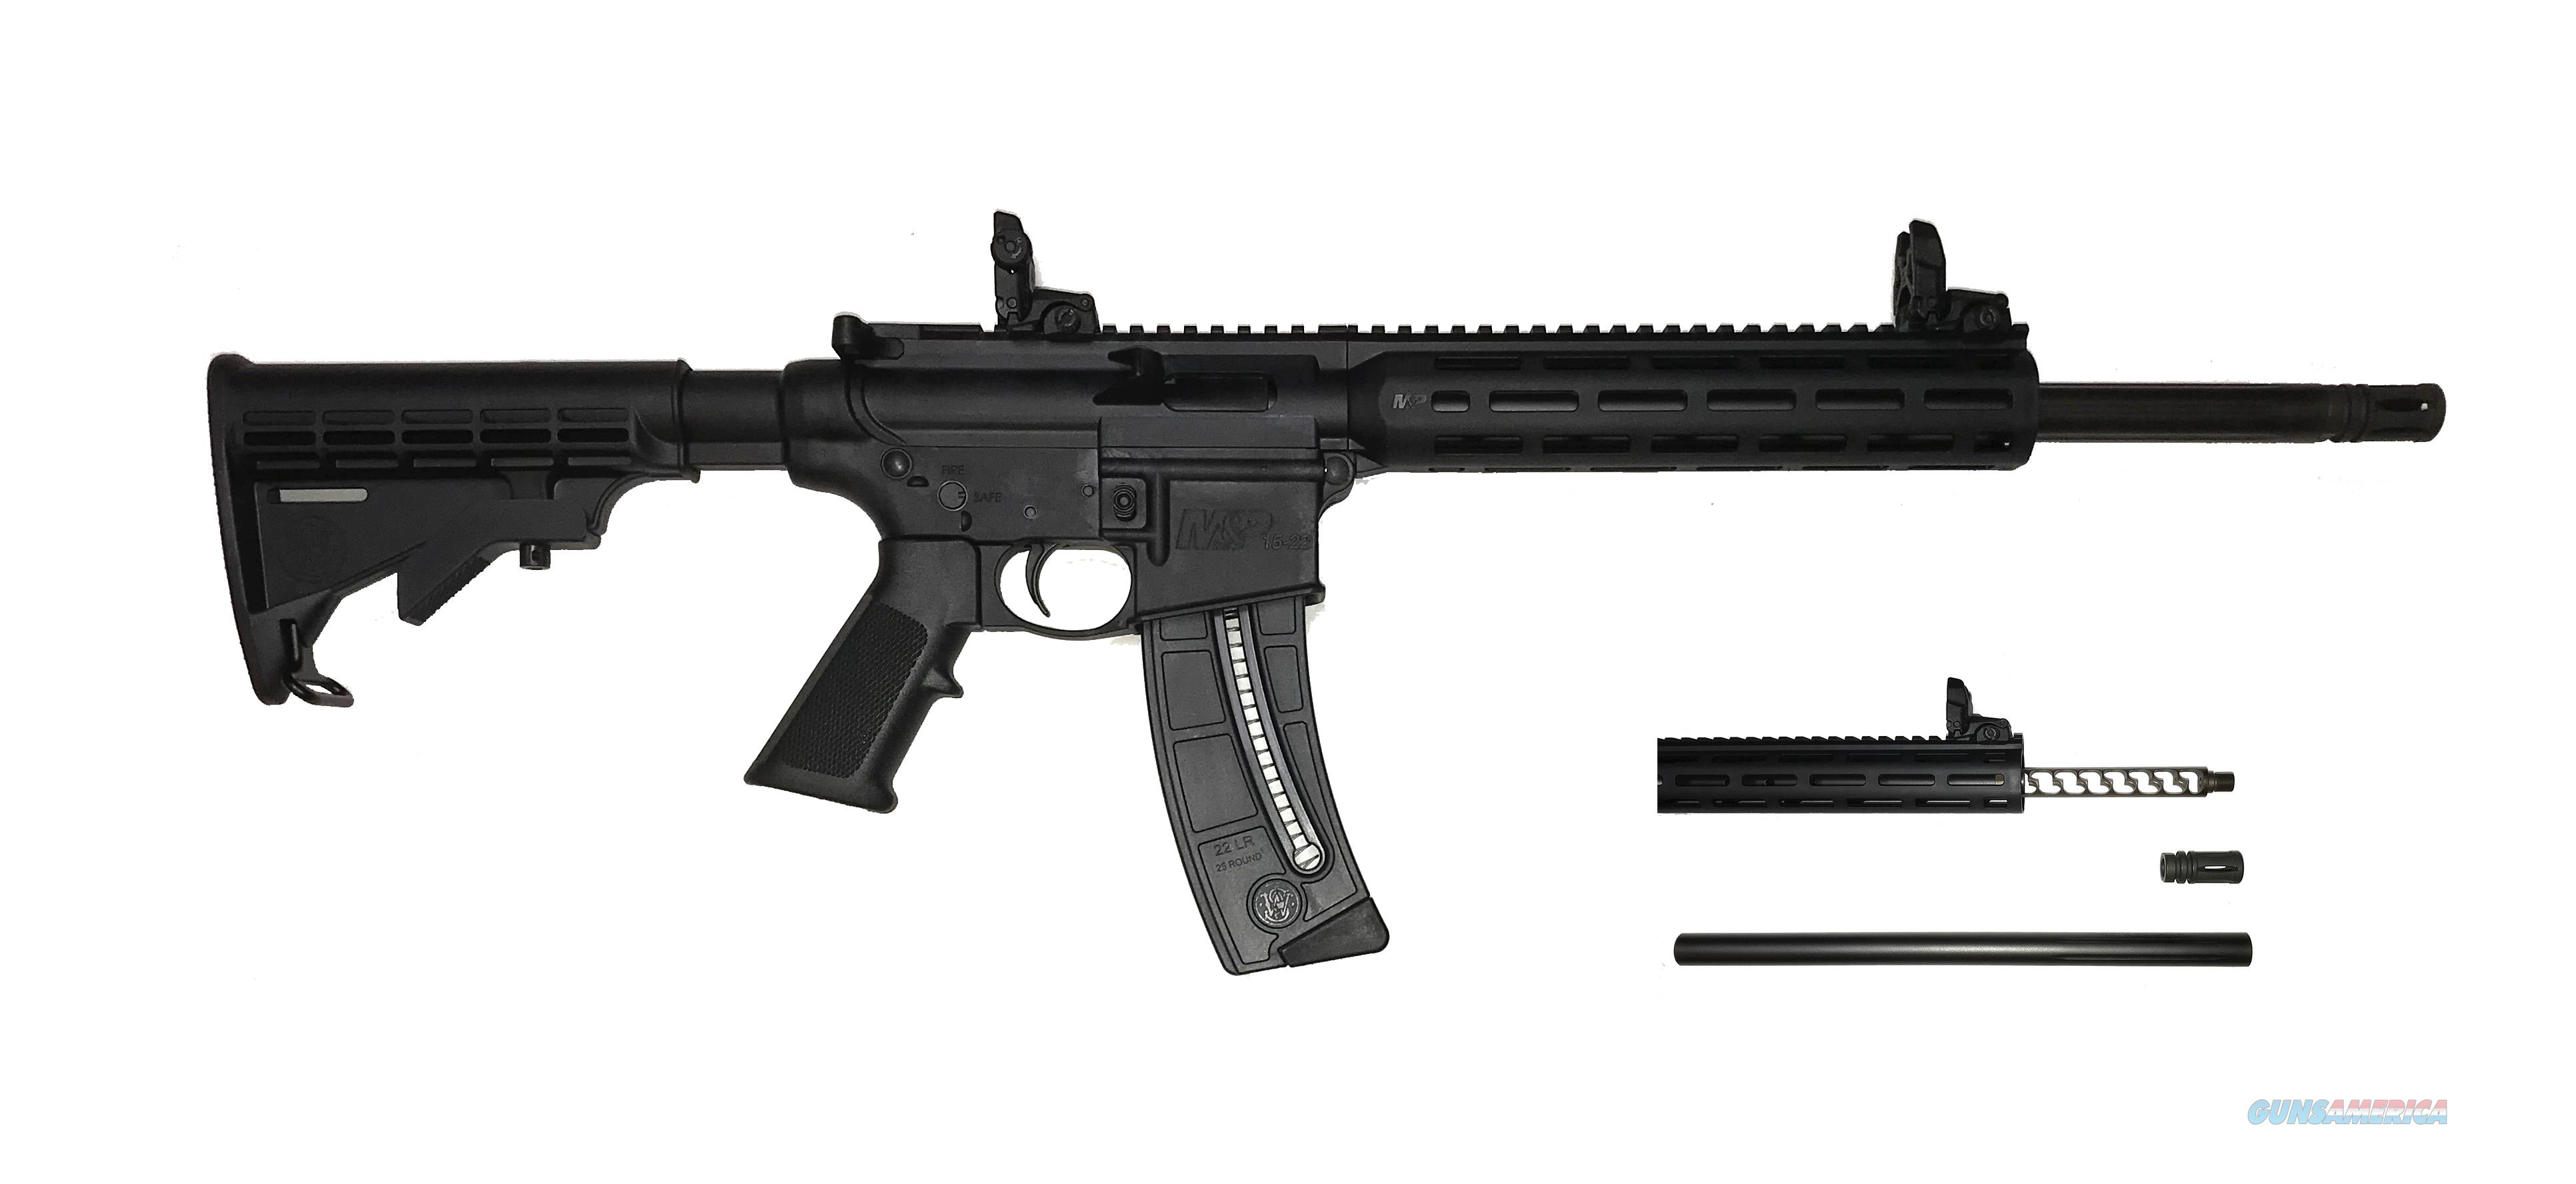 Innovative Arms Smith & Wesson M&P 15-22 .22LR  Integral Suppressed Silencer IASW  Guns > Rifles > Smith & Wesson Rifles > M&P